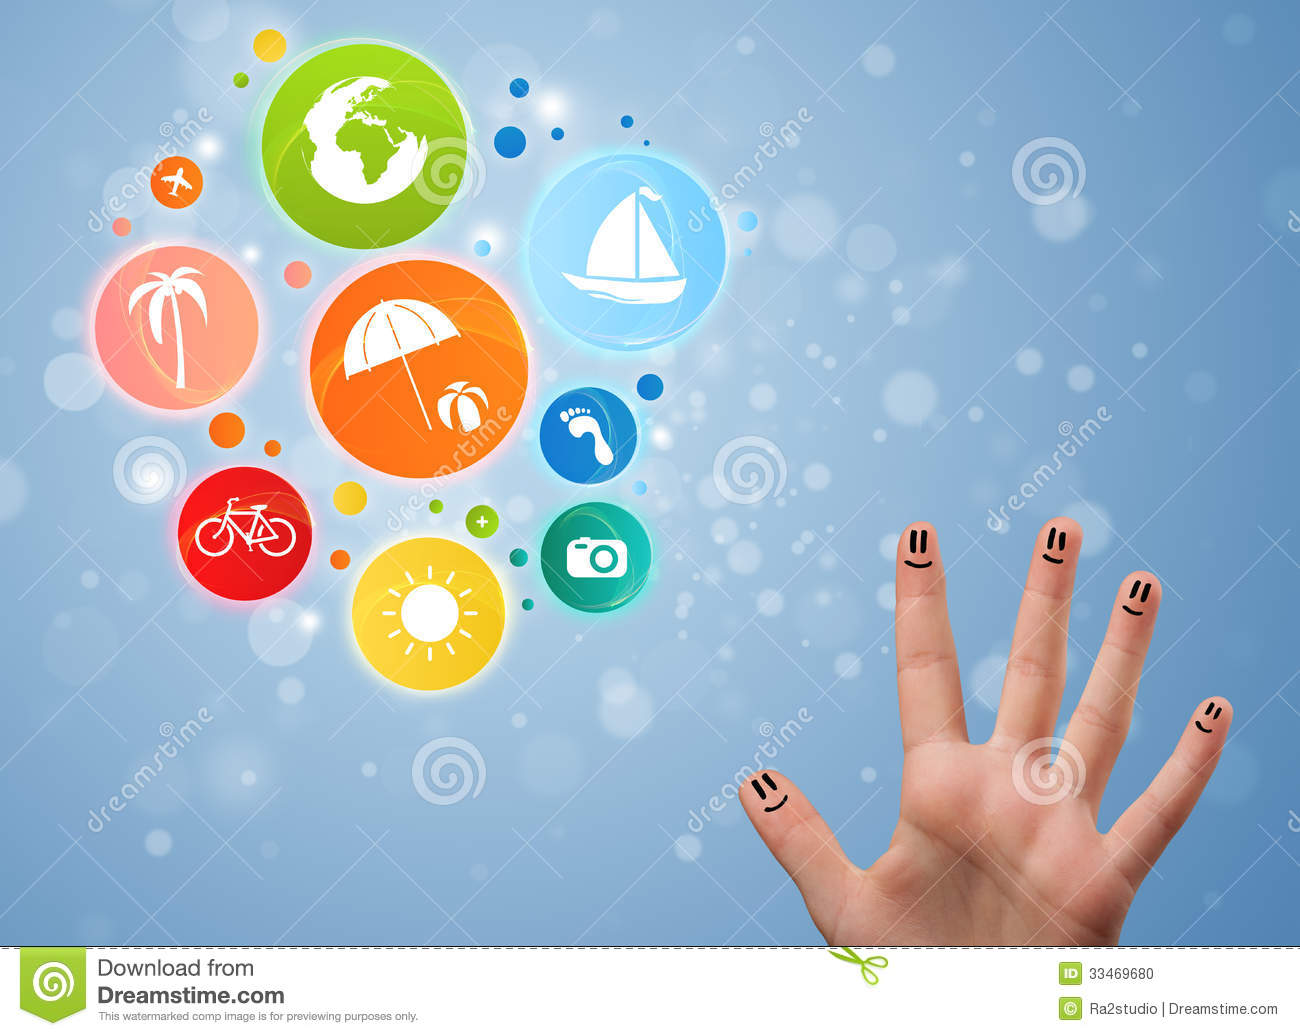 Royalty Free Stock Photo Download Cheerful Finger Smileys With Colorful Holiday Travel Bubble Icon